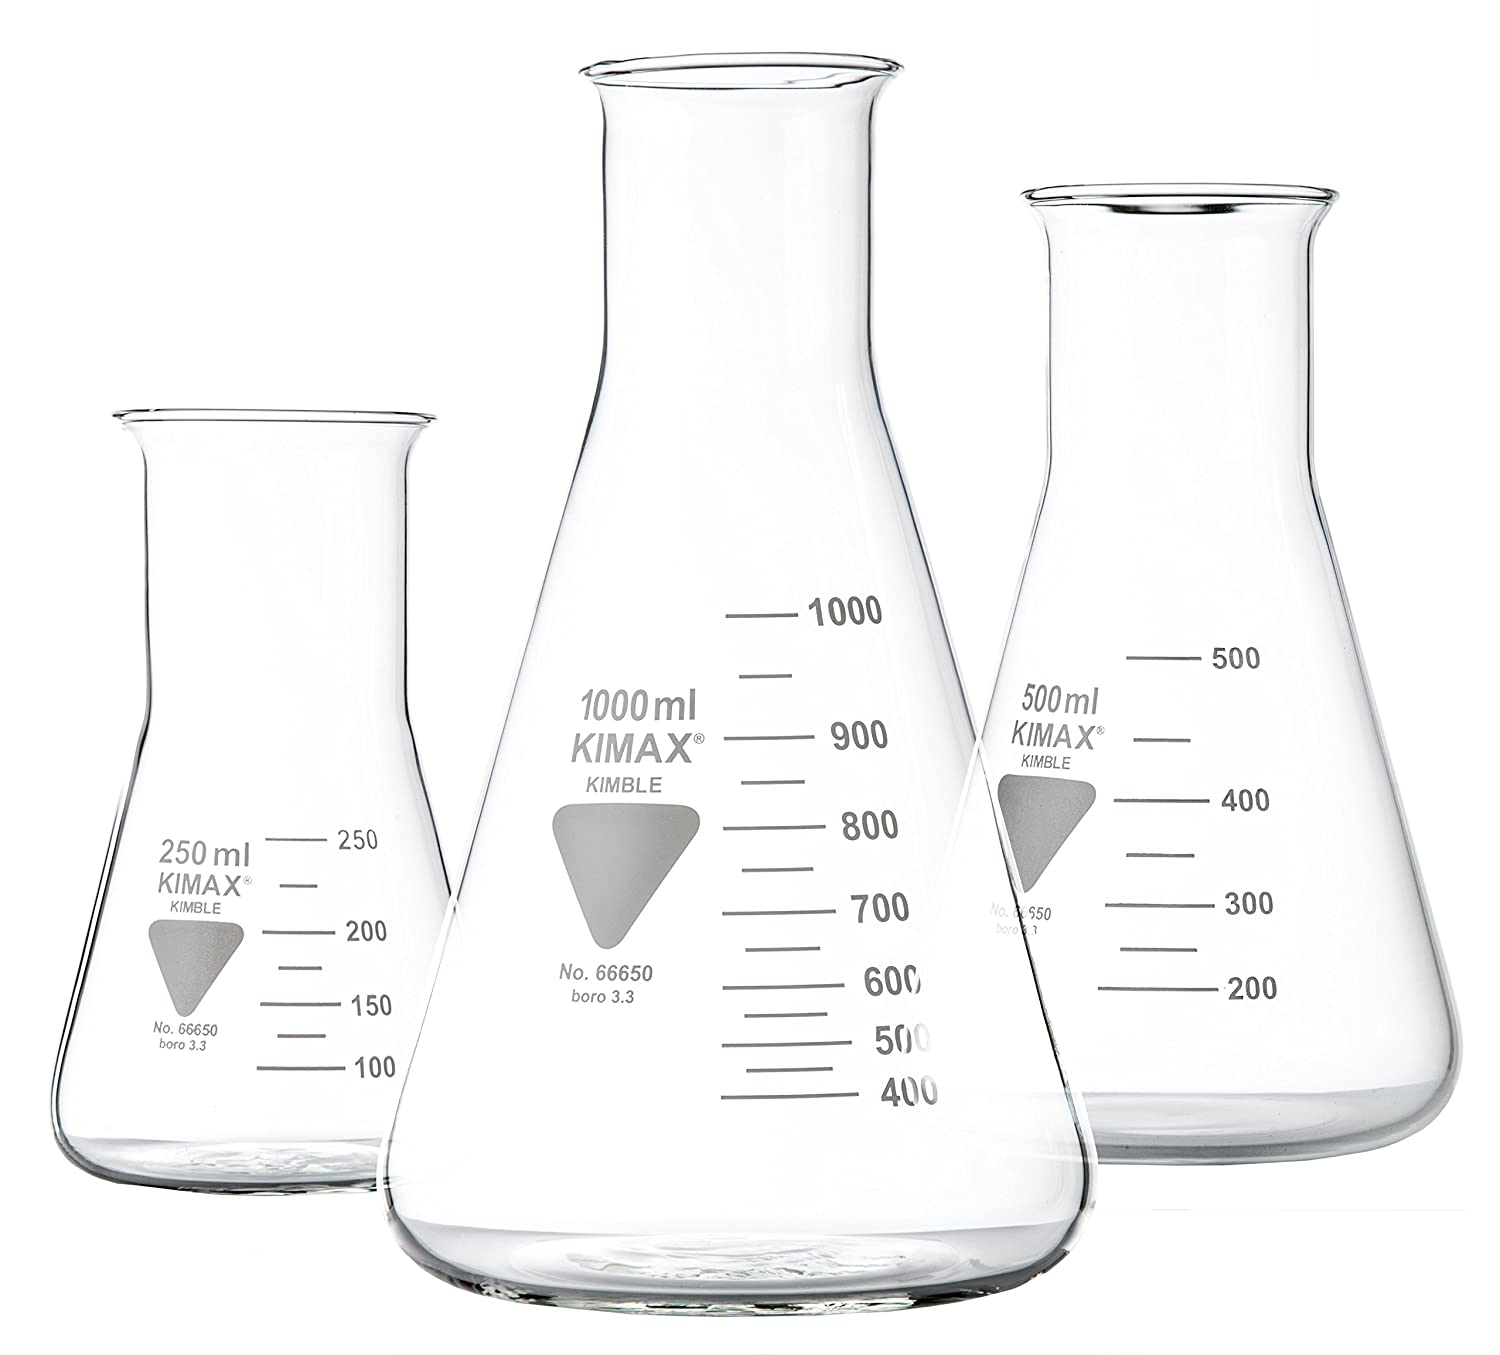 neolab 1– 0187  Erlenmeyer, Lo, kimax coktail 3,3, 100  ml 100 ml 1-0187